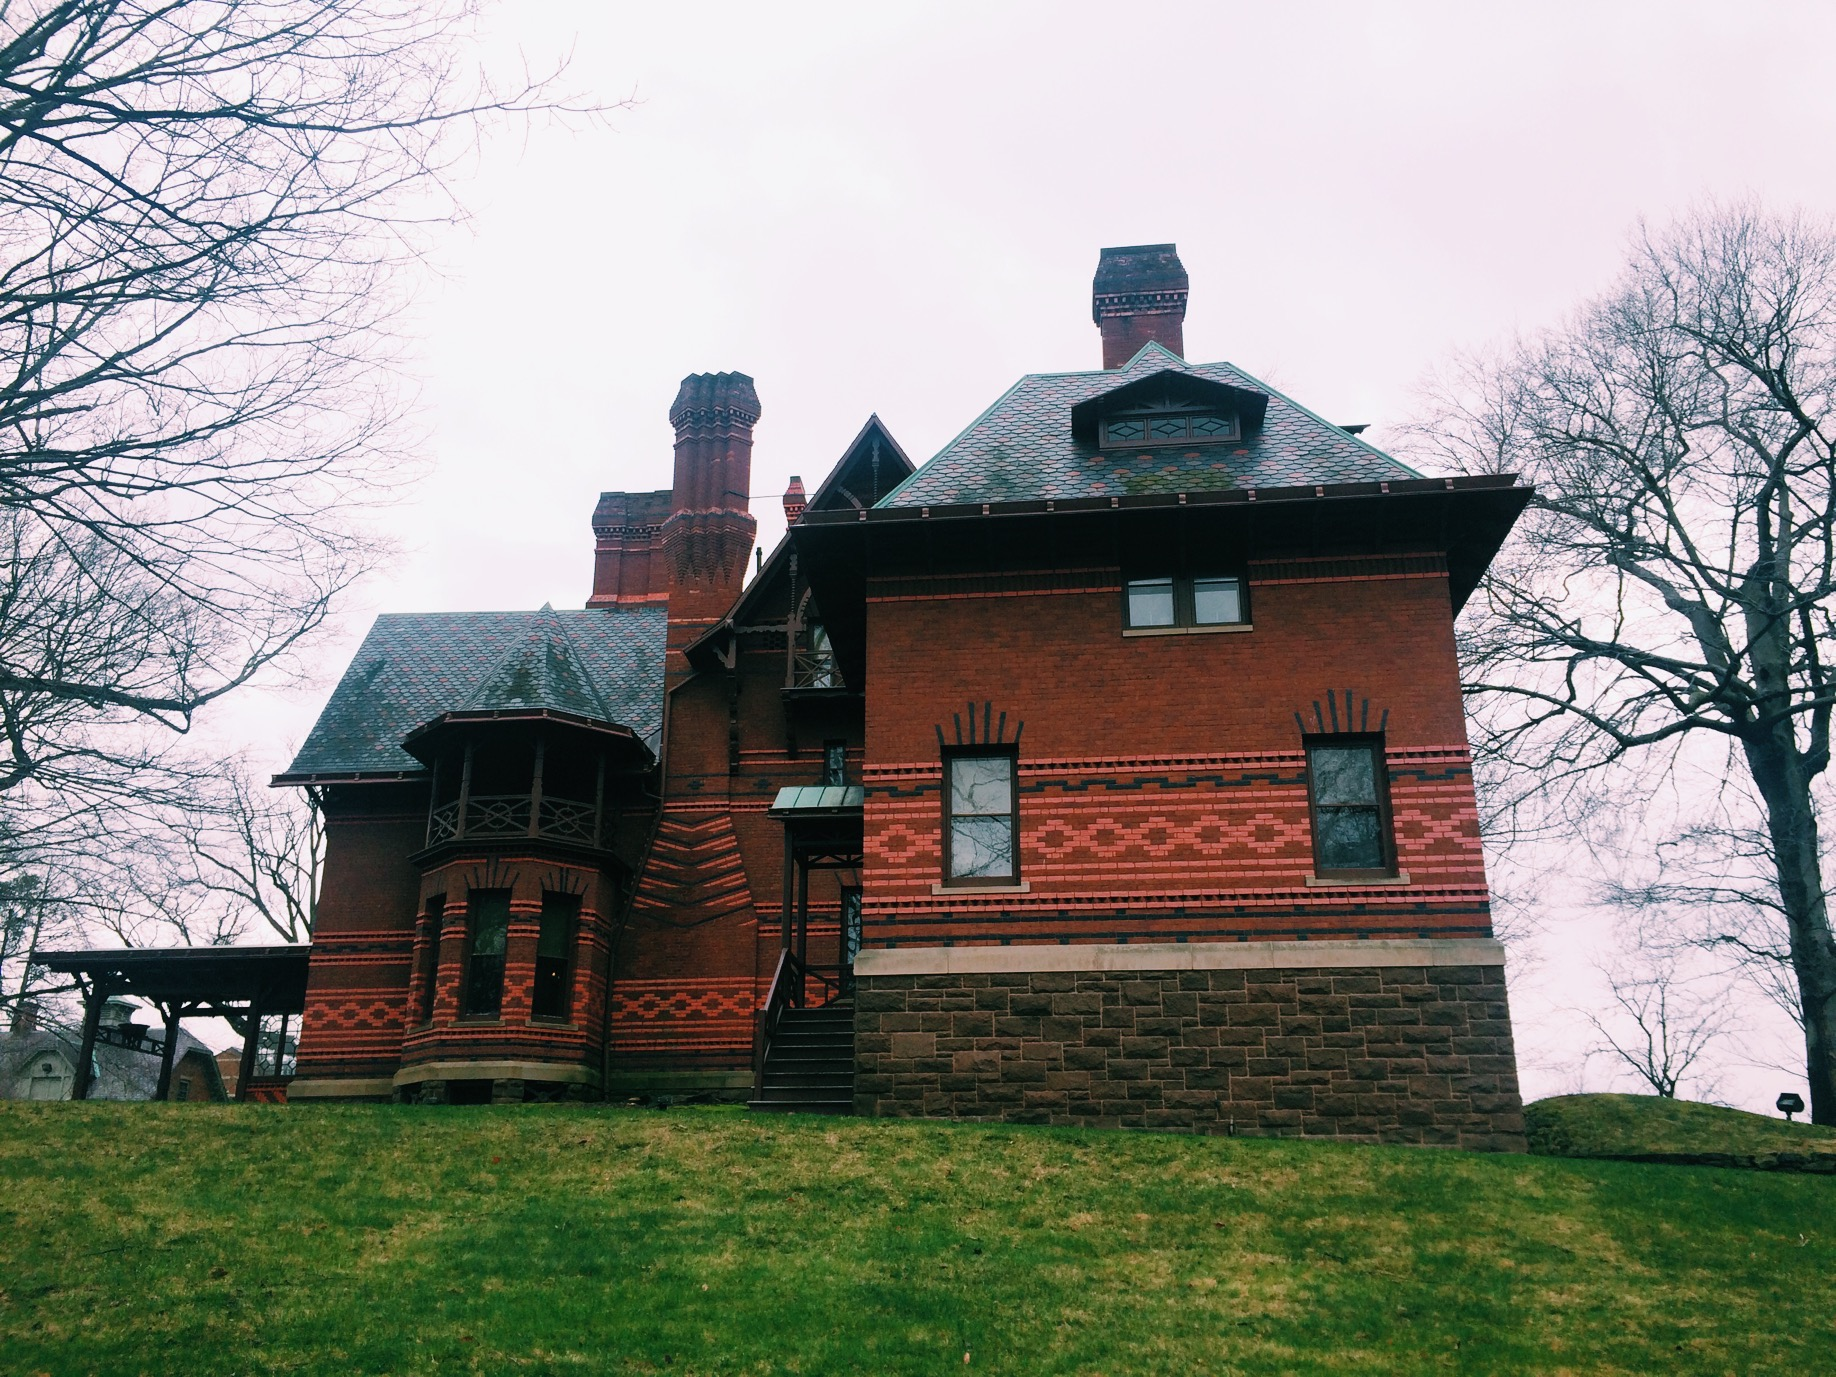 We also got to check out Mark Twain's house.